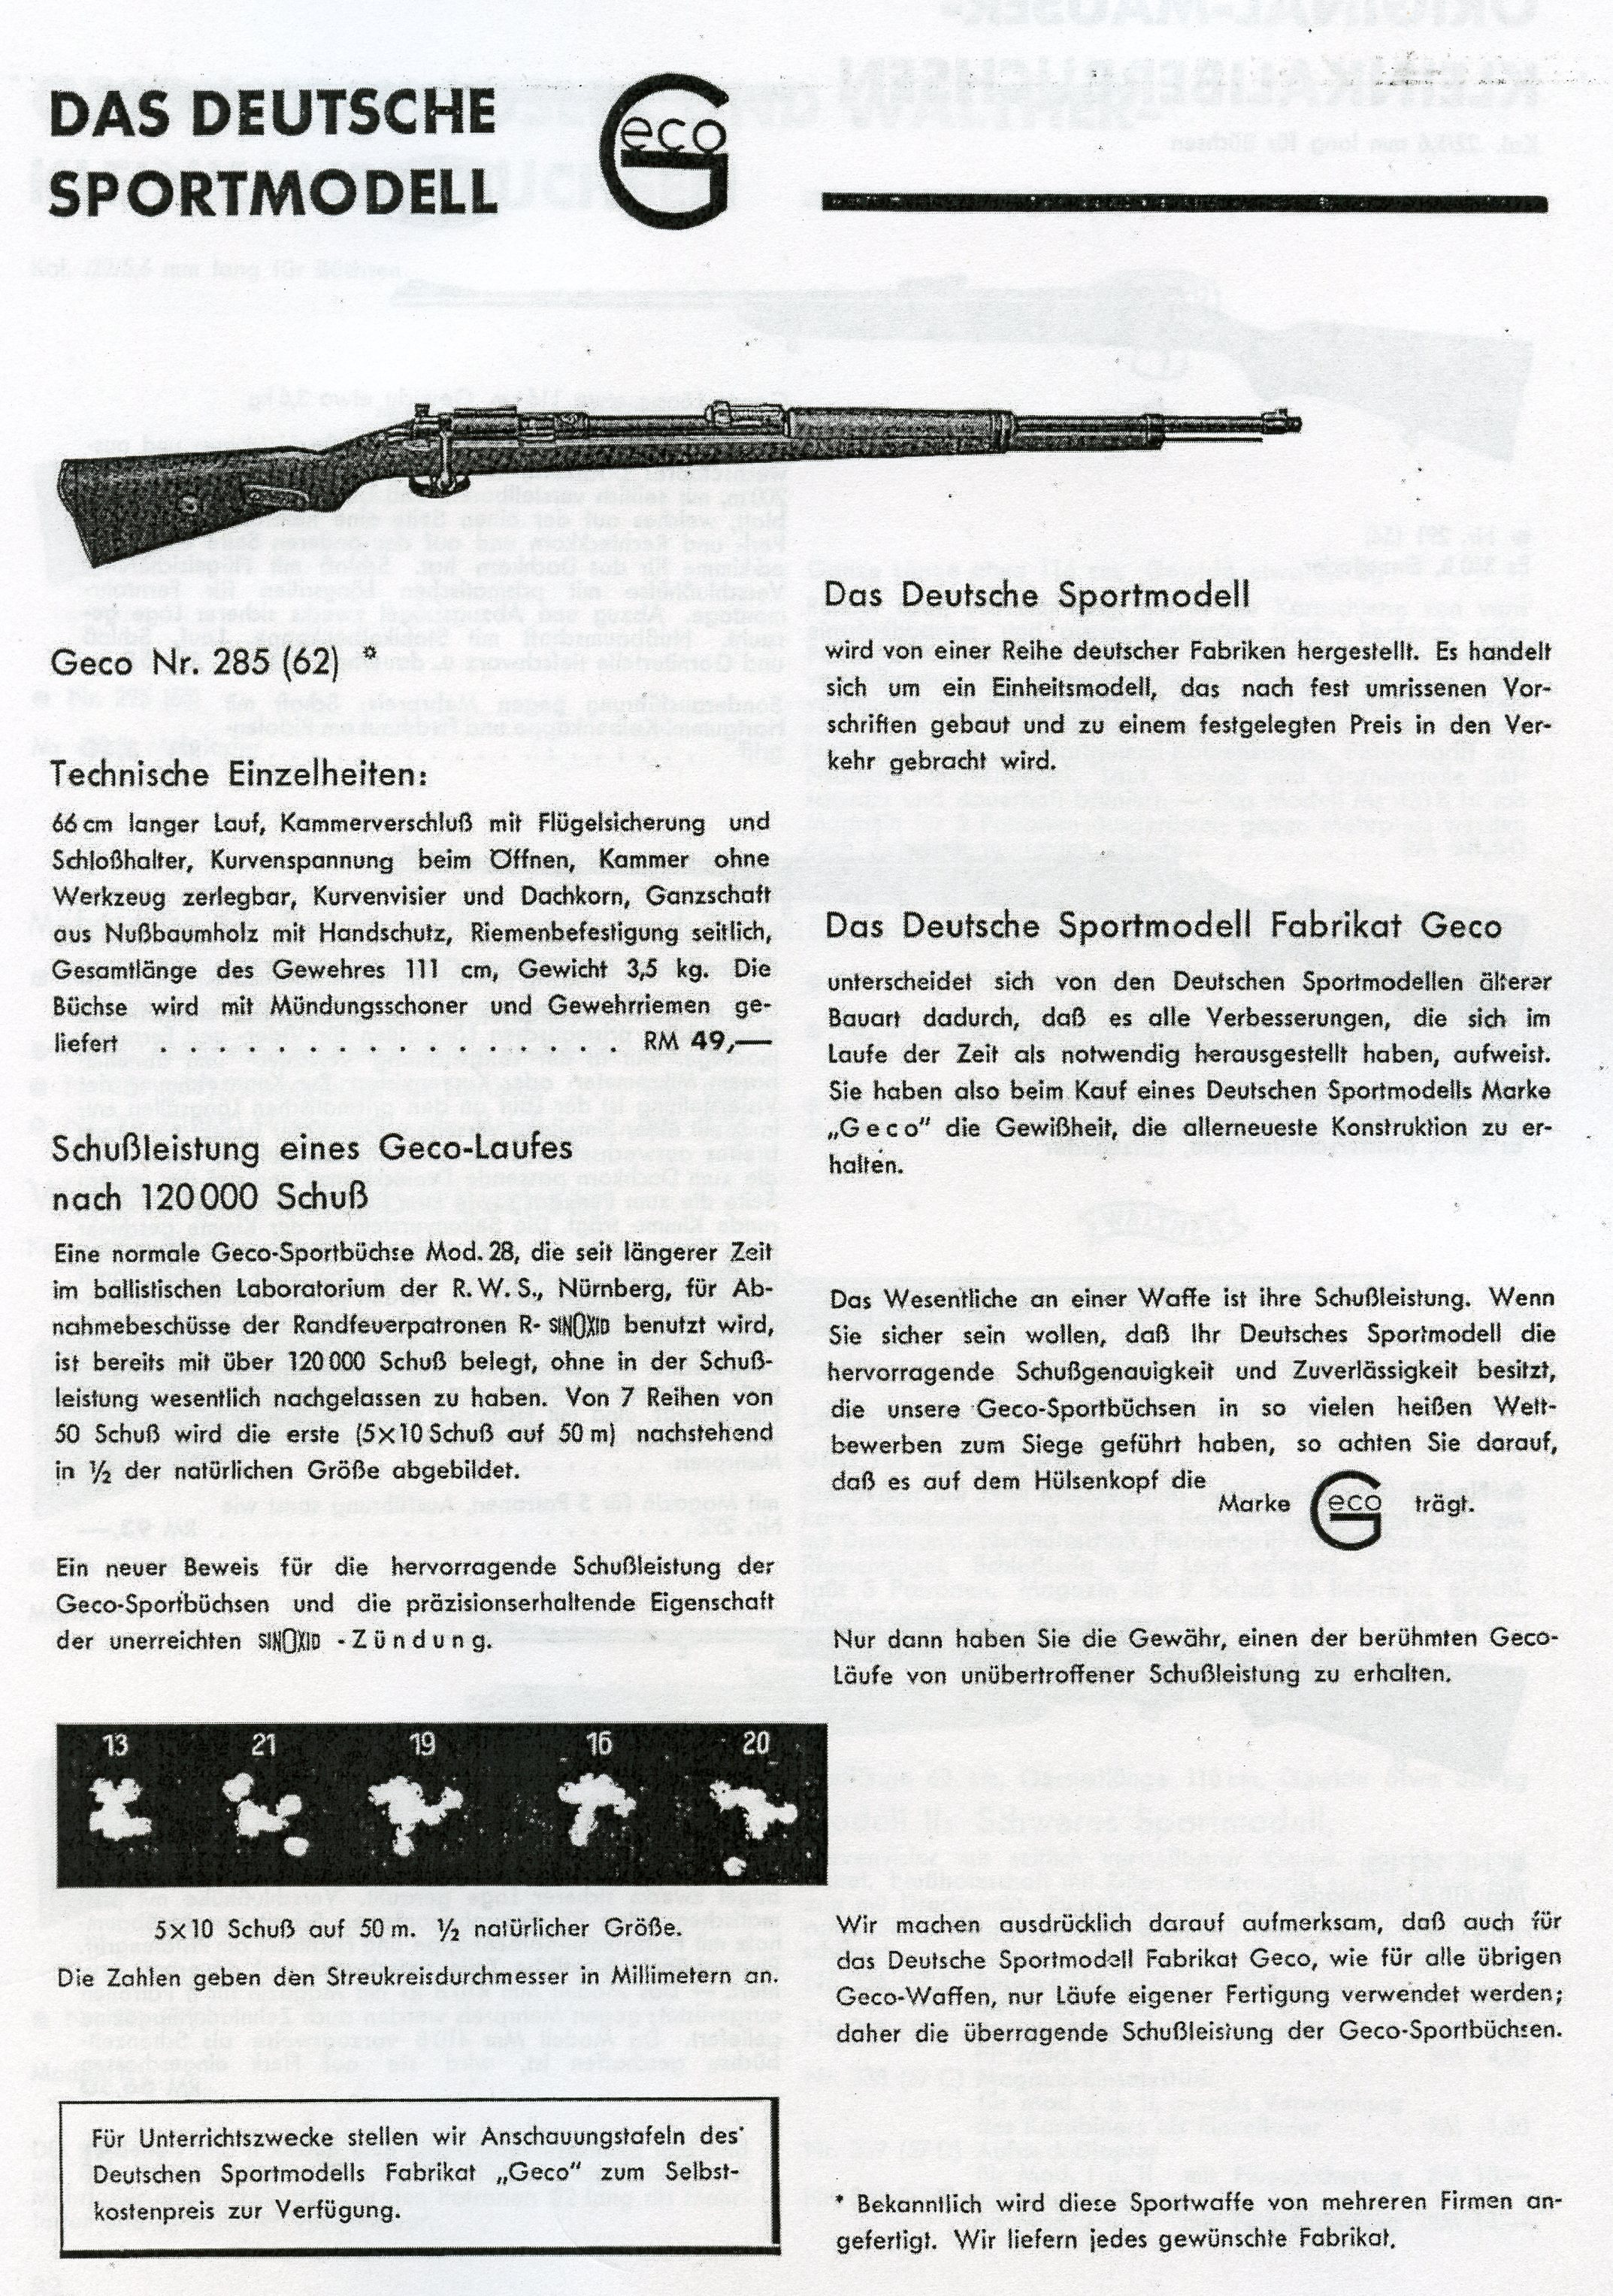 Geco was certainly the Sears & Roebuck of the German Sporting world with  facilities making Ammunition, Leather goods, and they sold, imported and  exported ...